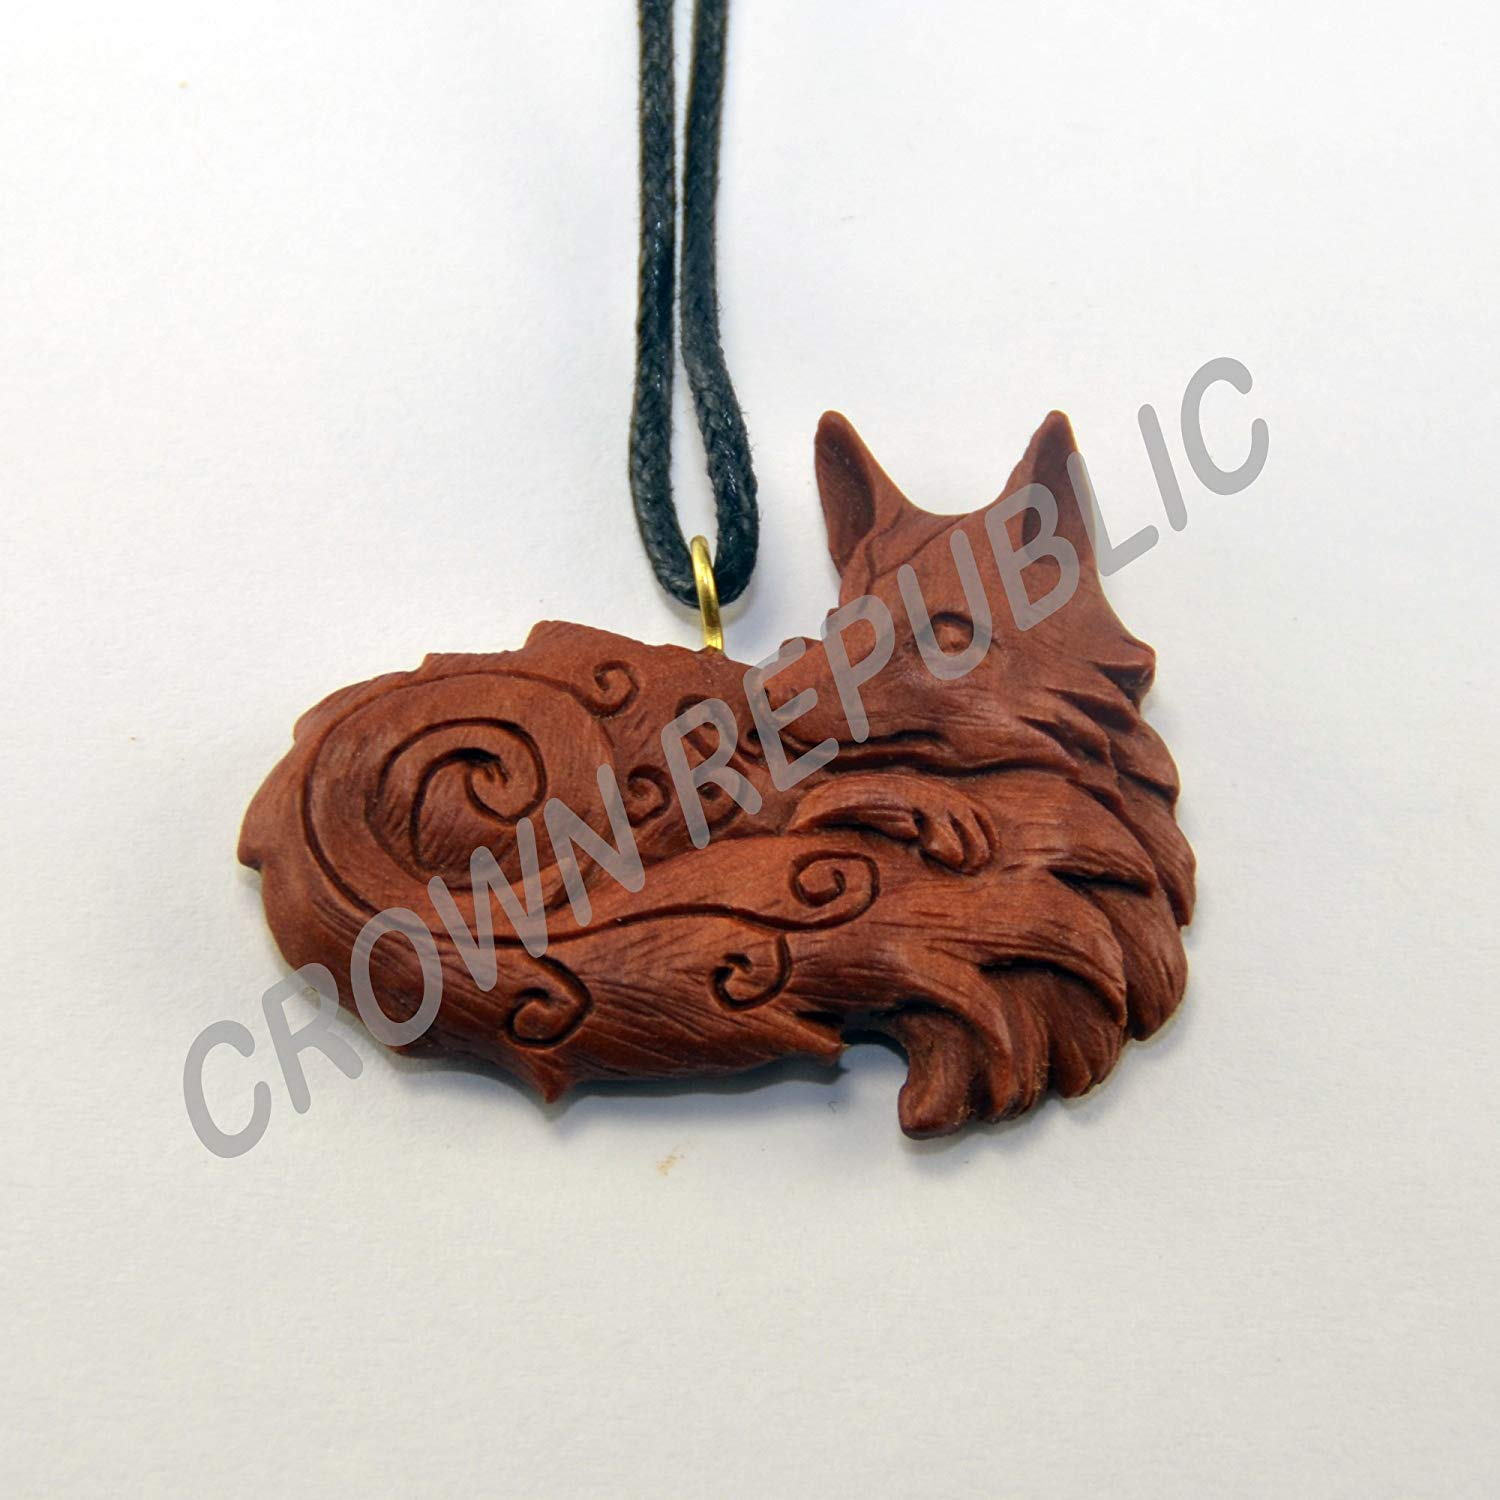 Cheap carved fox find carved fox deals on line at alibaba.com